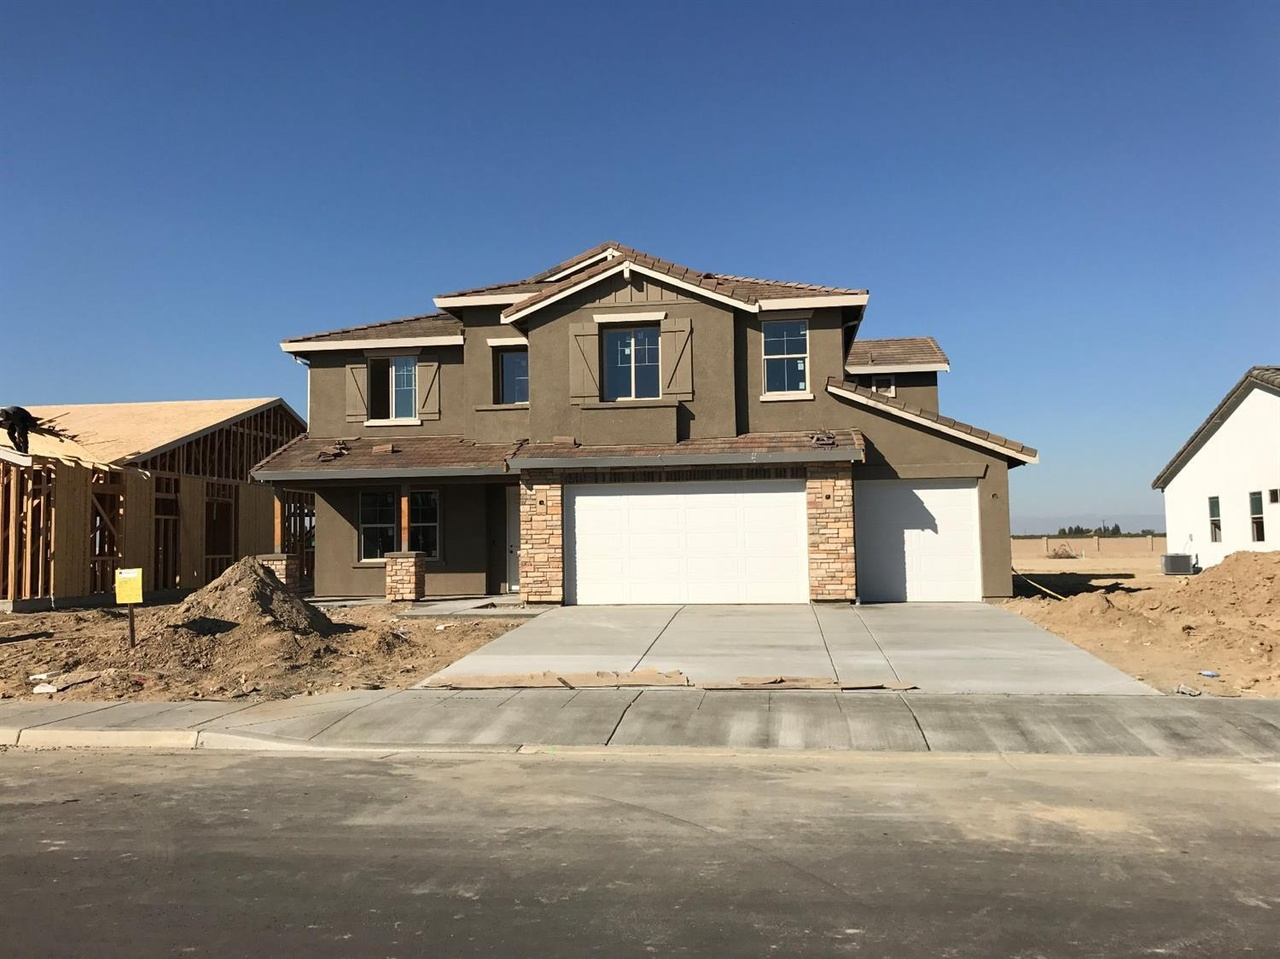 802 e aretha fowler ca 93625 mls 487748 redfin for House plans 10000 square feet plus